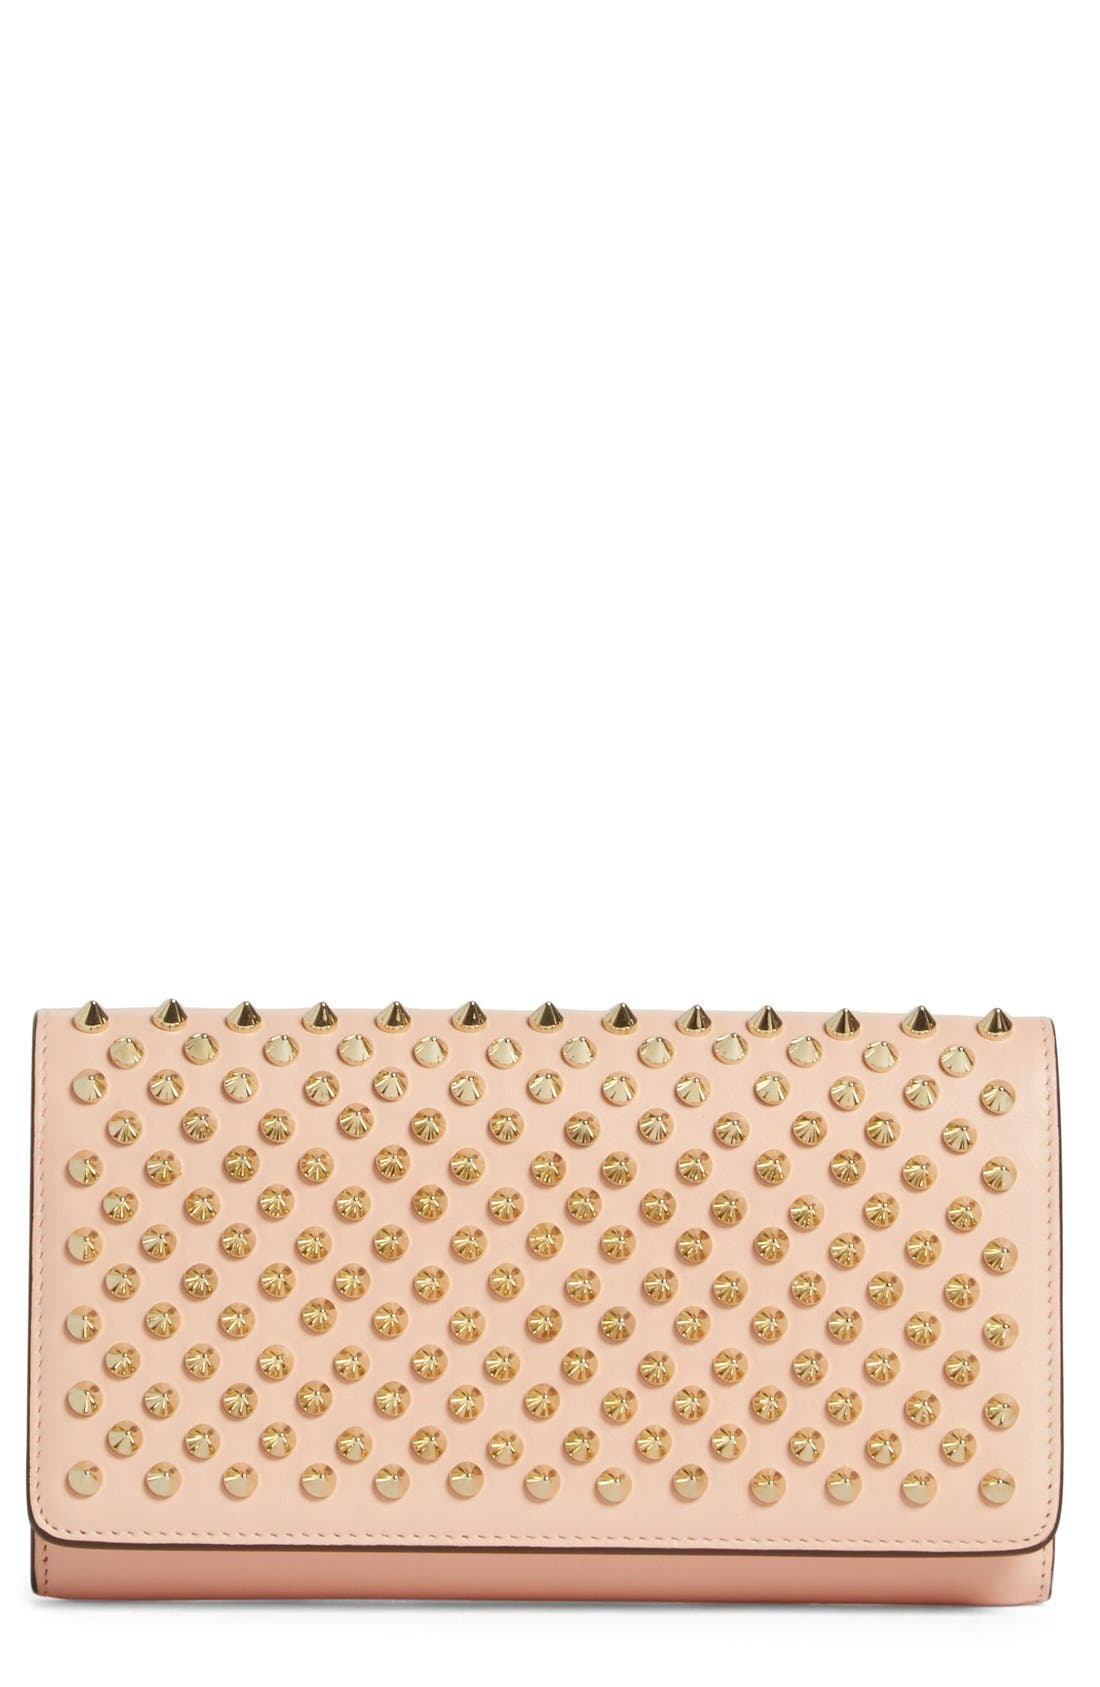 'Macaron' Studded Leather Continental Wallet,                             Main thumbnail 4, color,